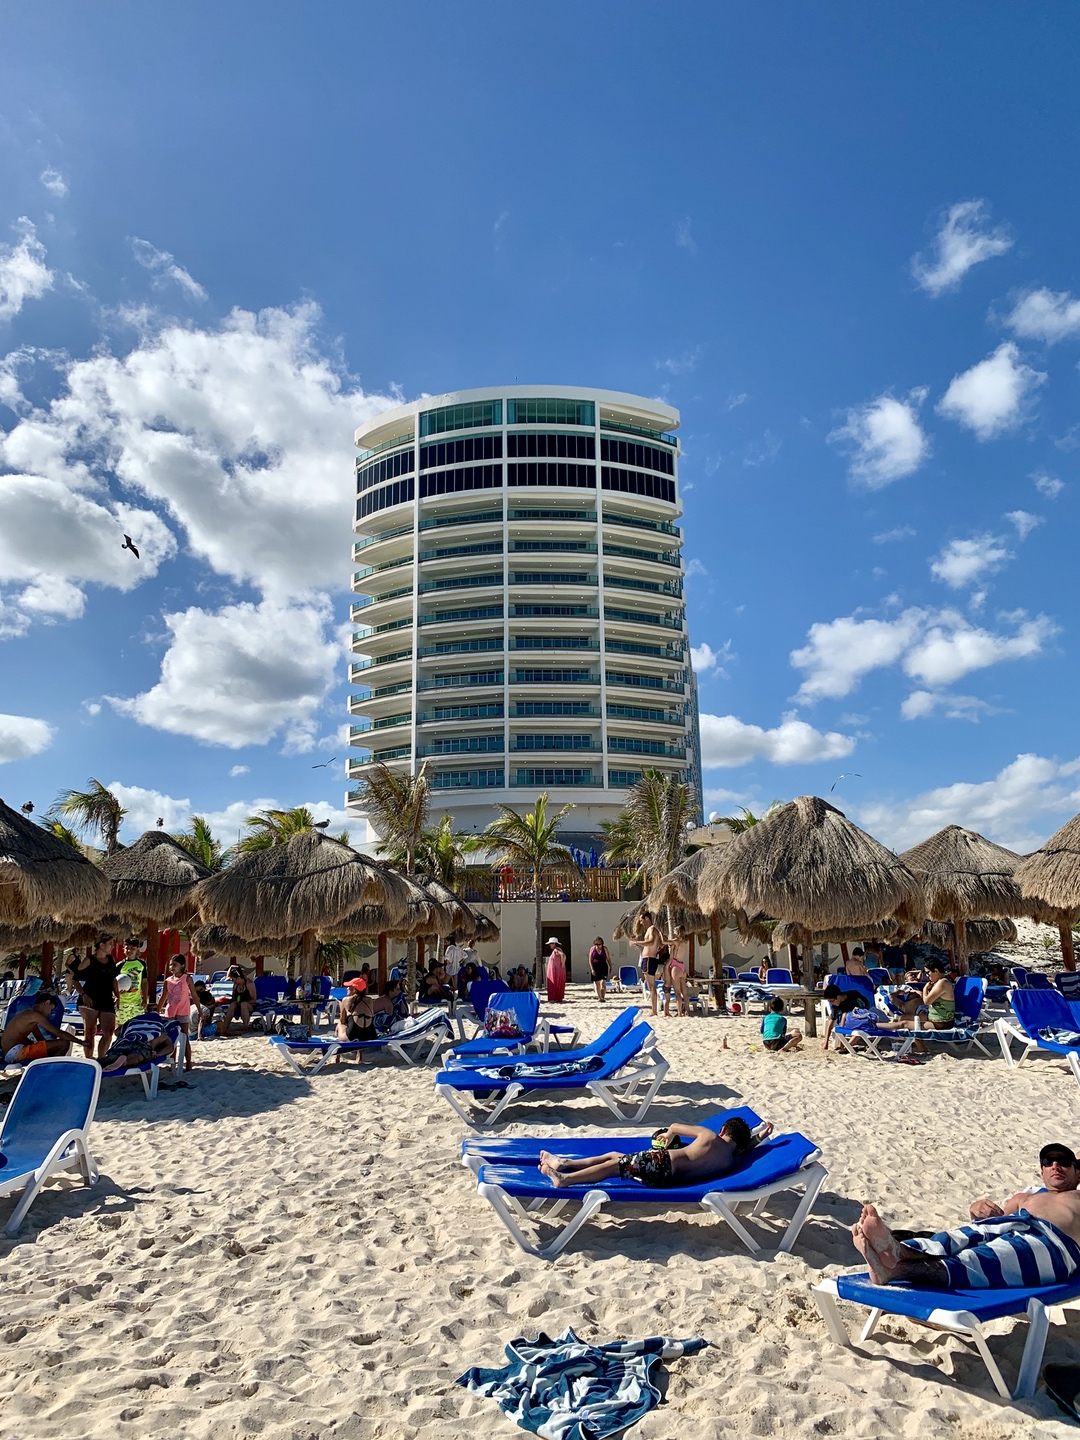 Seadust Cancun Family Resort #Seadust #Cancun #Mexico #travel #familytravel #getaway #ad